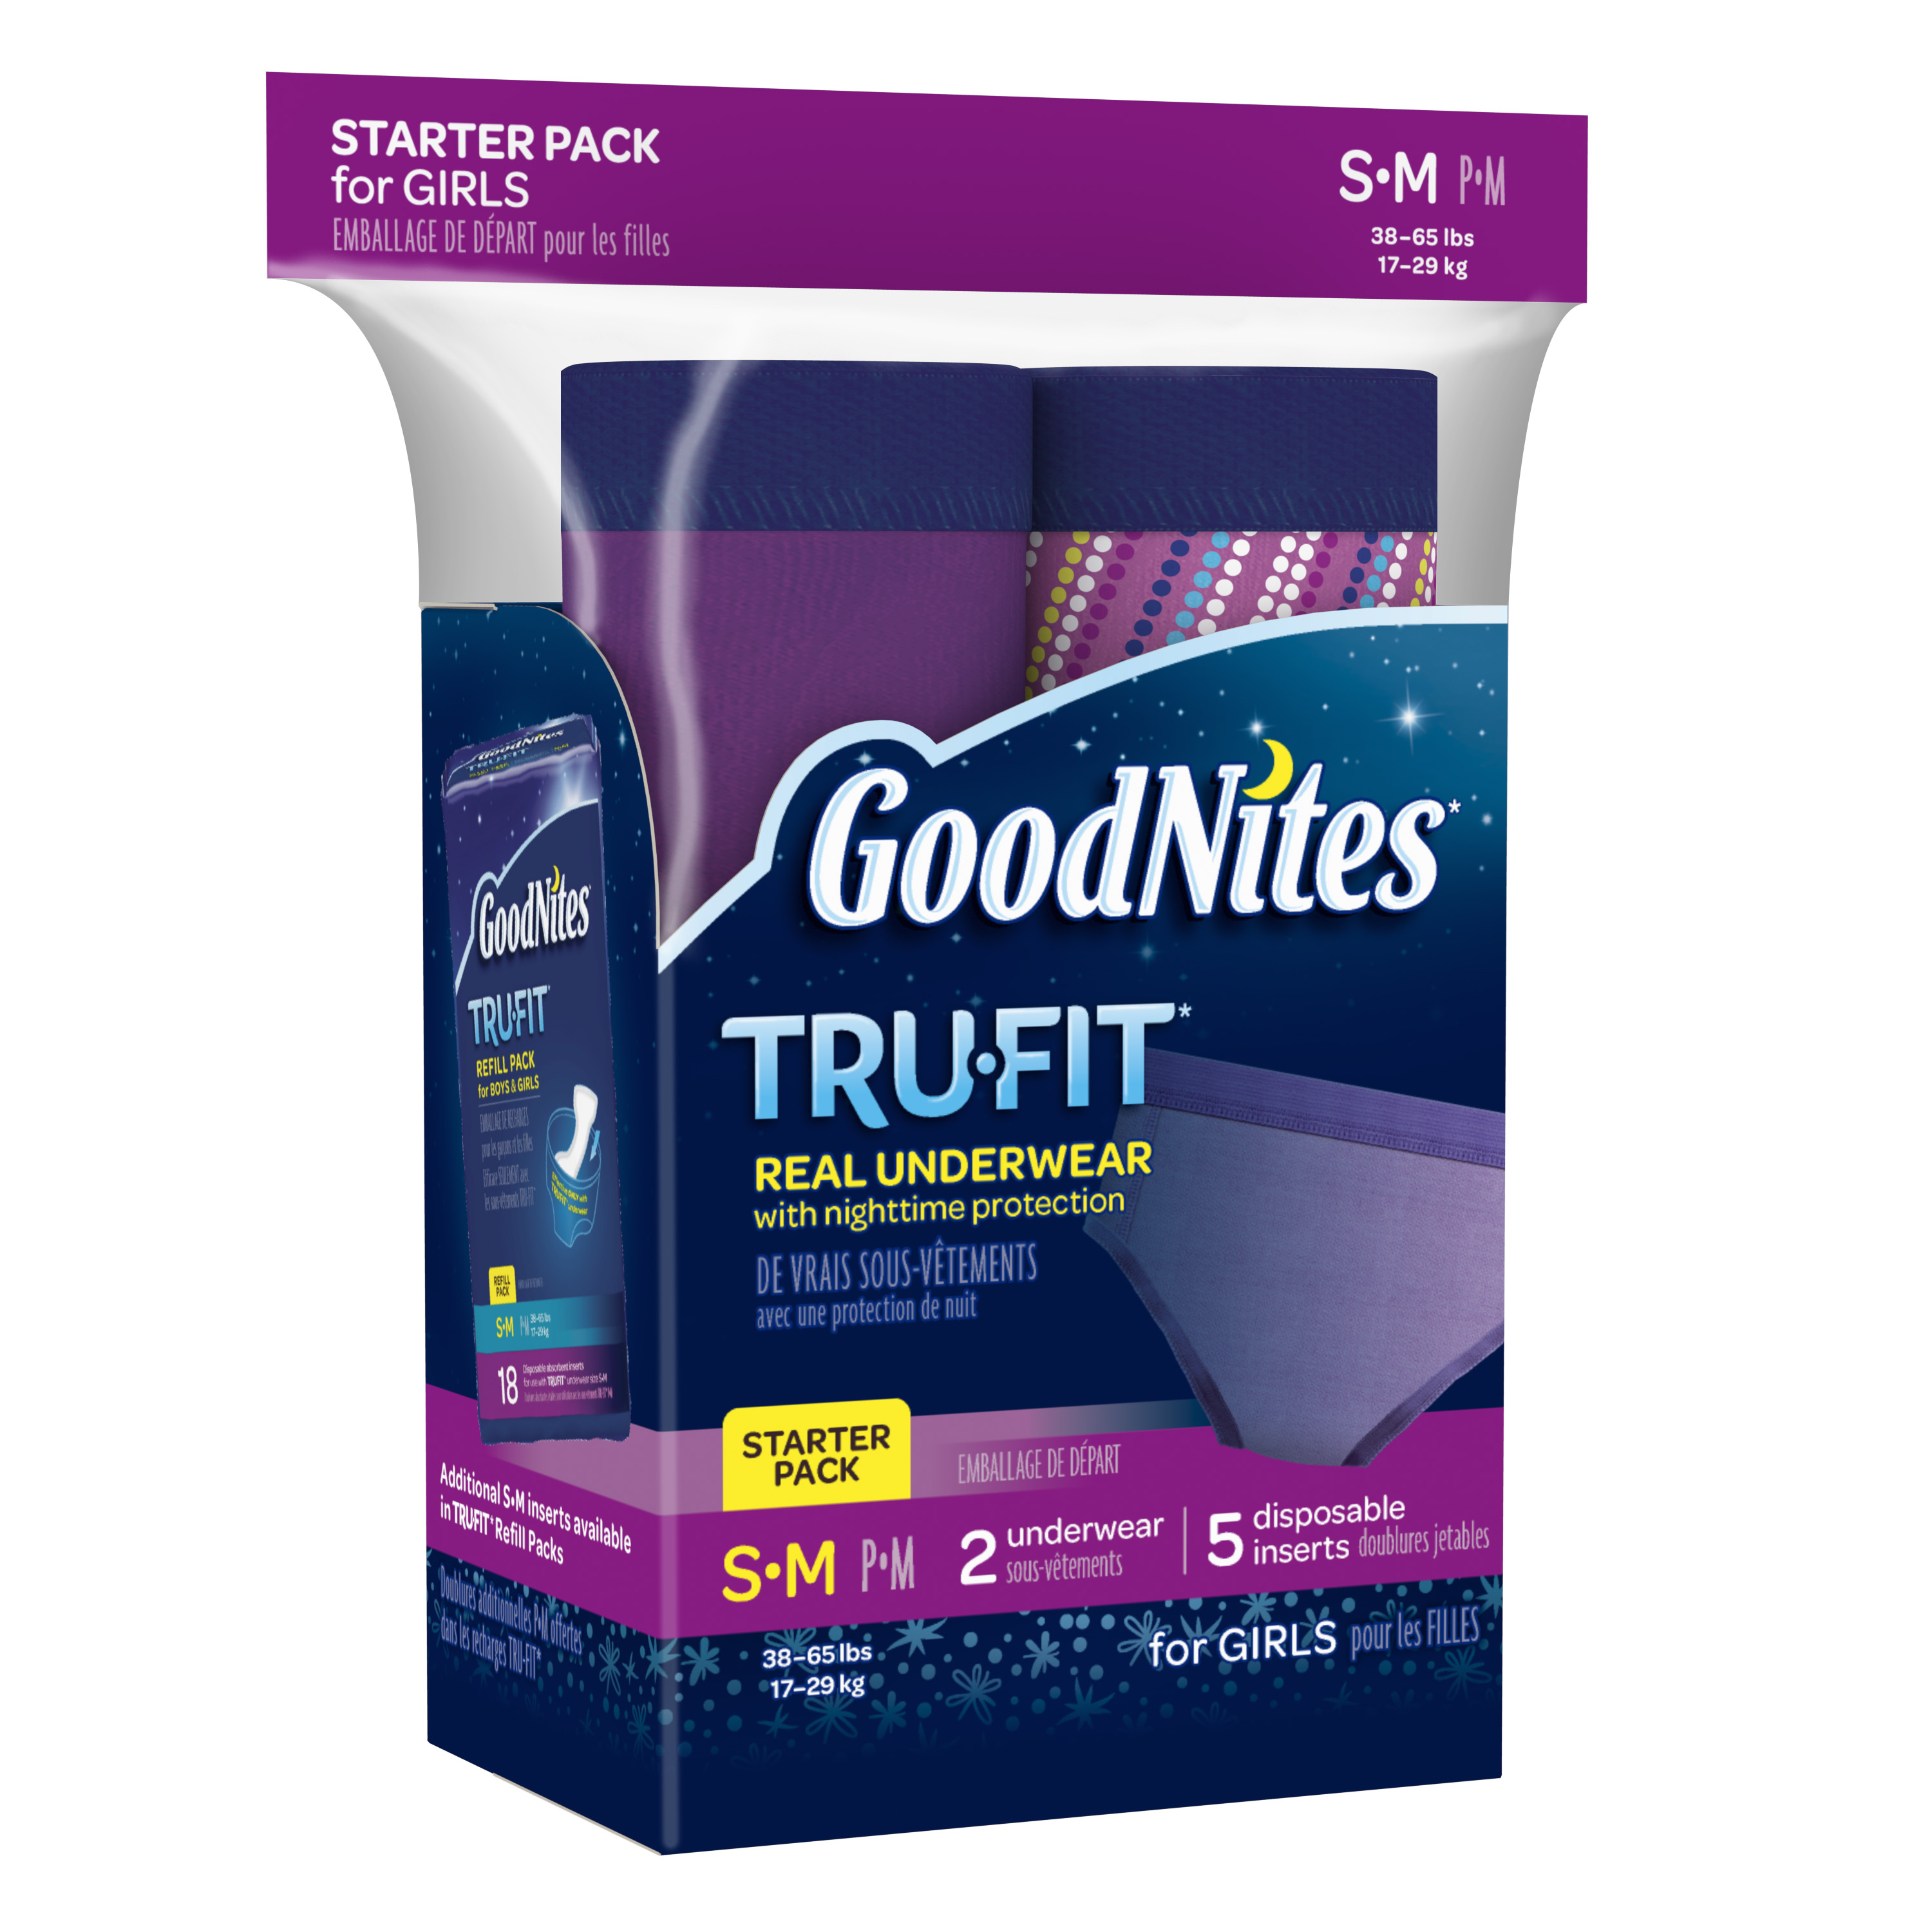 Goodnites Tru-Fit Bedwetting Underwear for Girls, Starter Pack